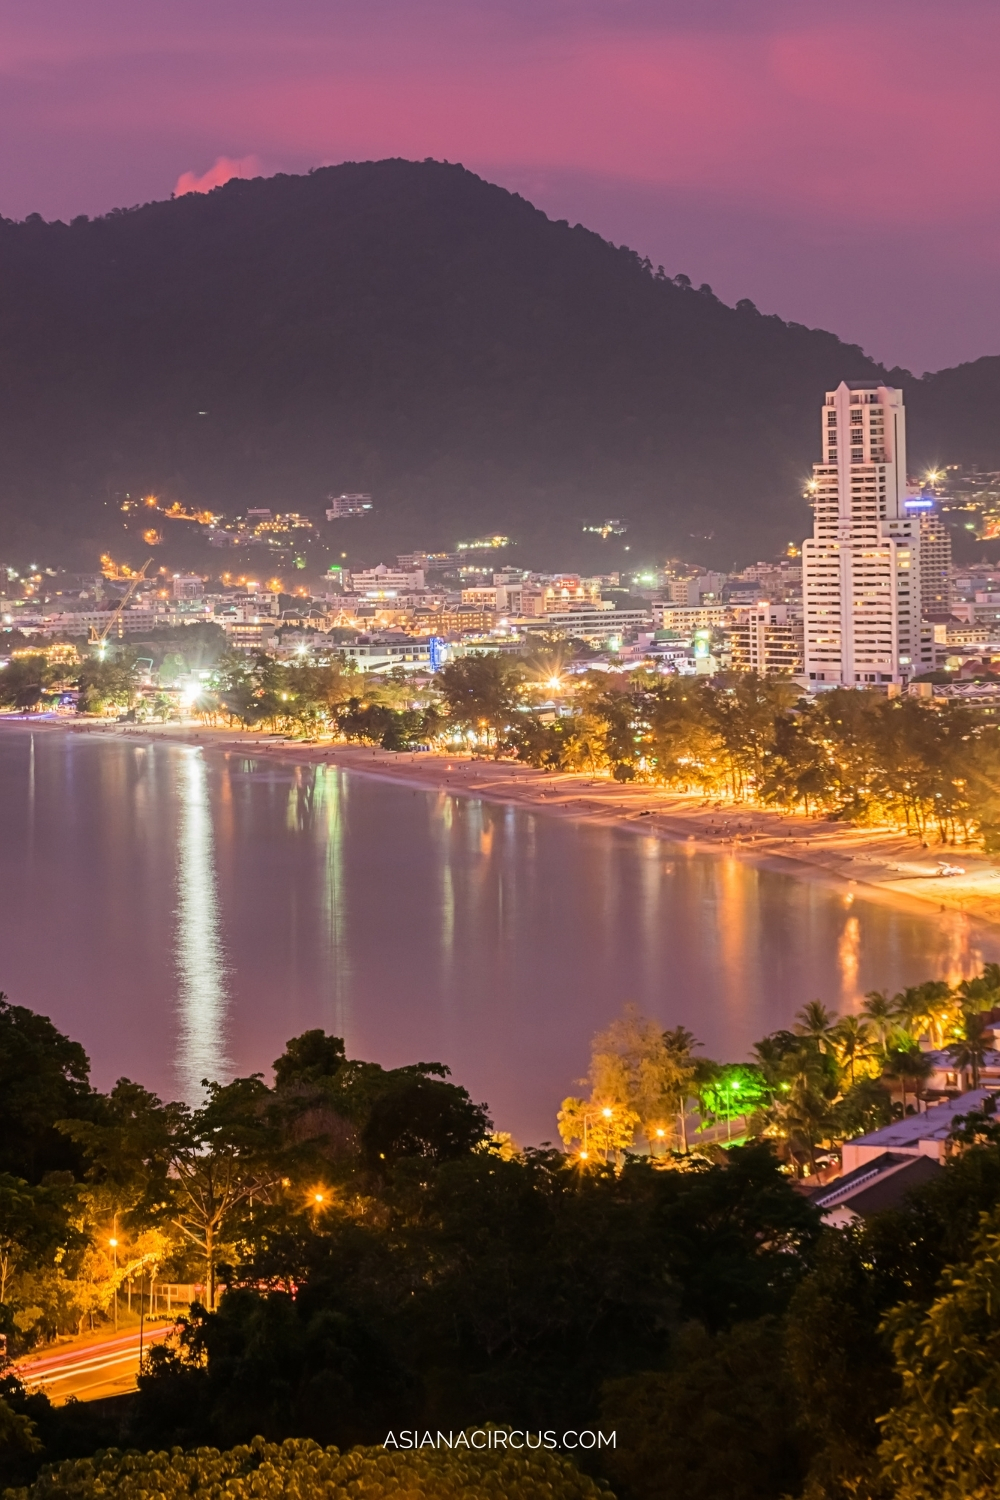 Patong for nightlife seekers - best beaches in Phuket, Thailand